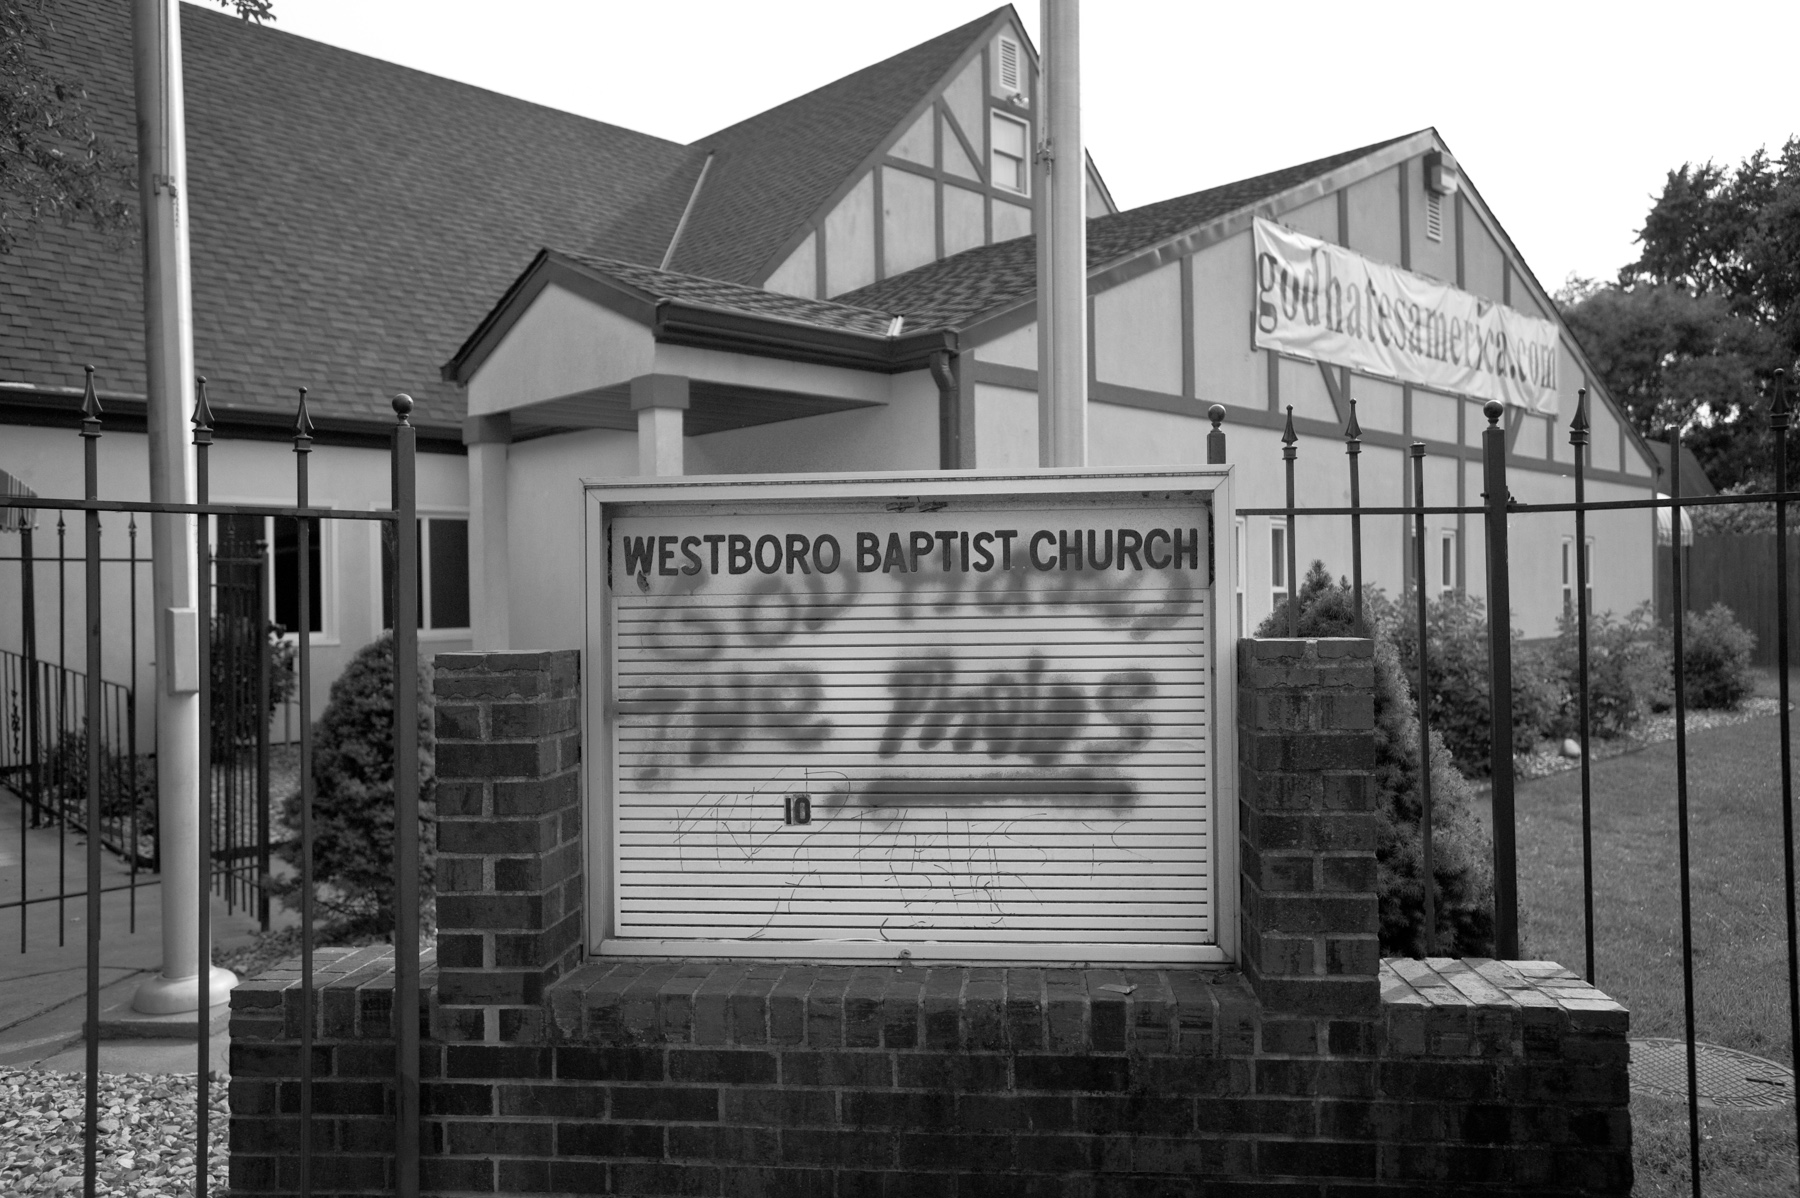 Graffiti defaces the sign of the Westboro Baptist Church.